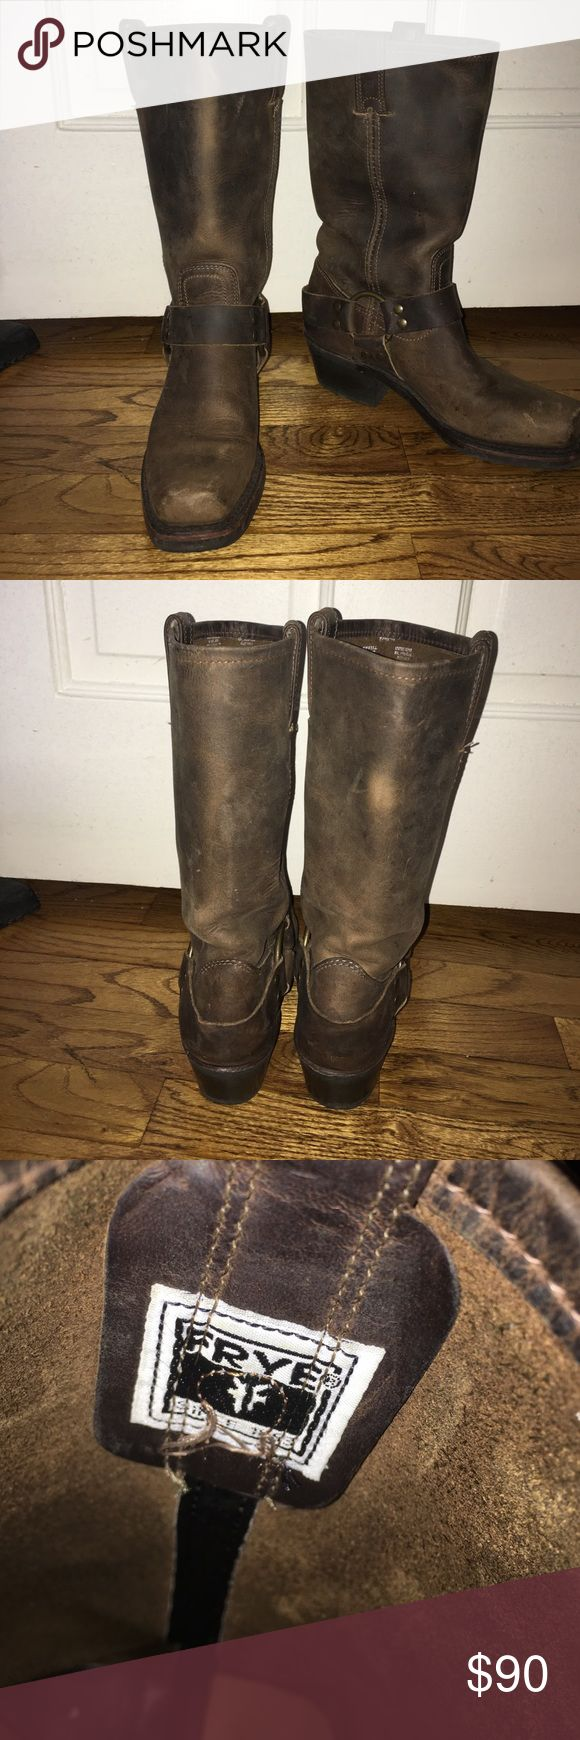 Frye riding boots! Love these guys- selling because I upgraded to a new pair and rarely wear these ones. They are well loved so some obvious wear and tear but broken in just for you! Leather and high quality. Lovely addition to any wardrobe! Size 5.5 but fit like a 6. Frye Shoes Winter & Rain Boots